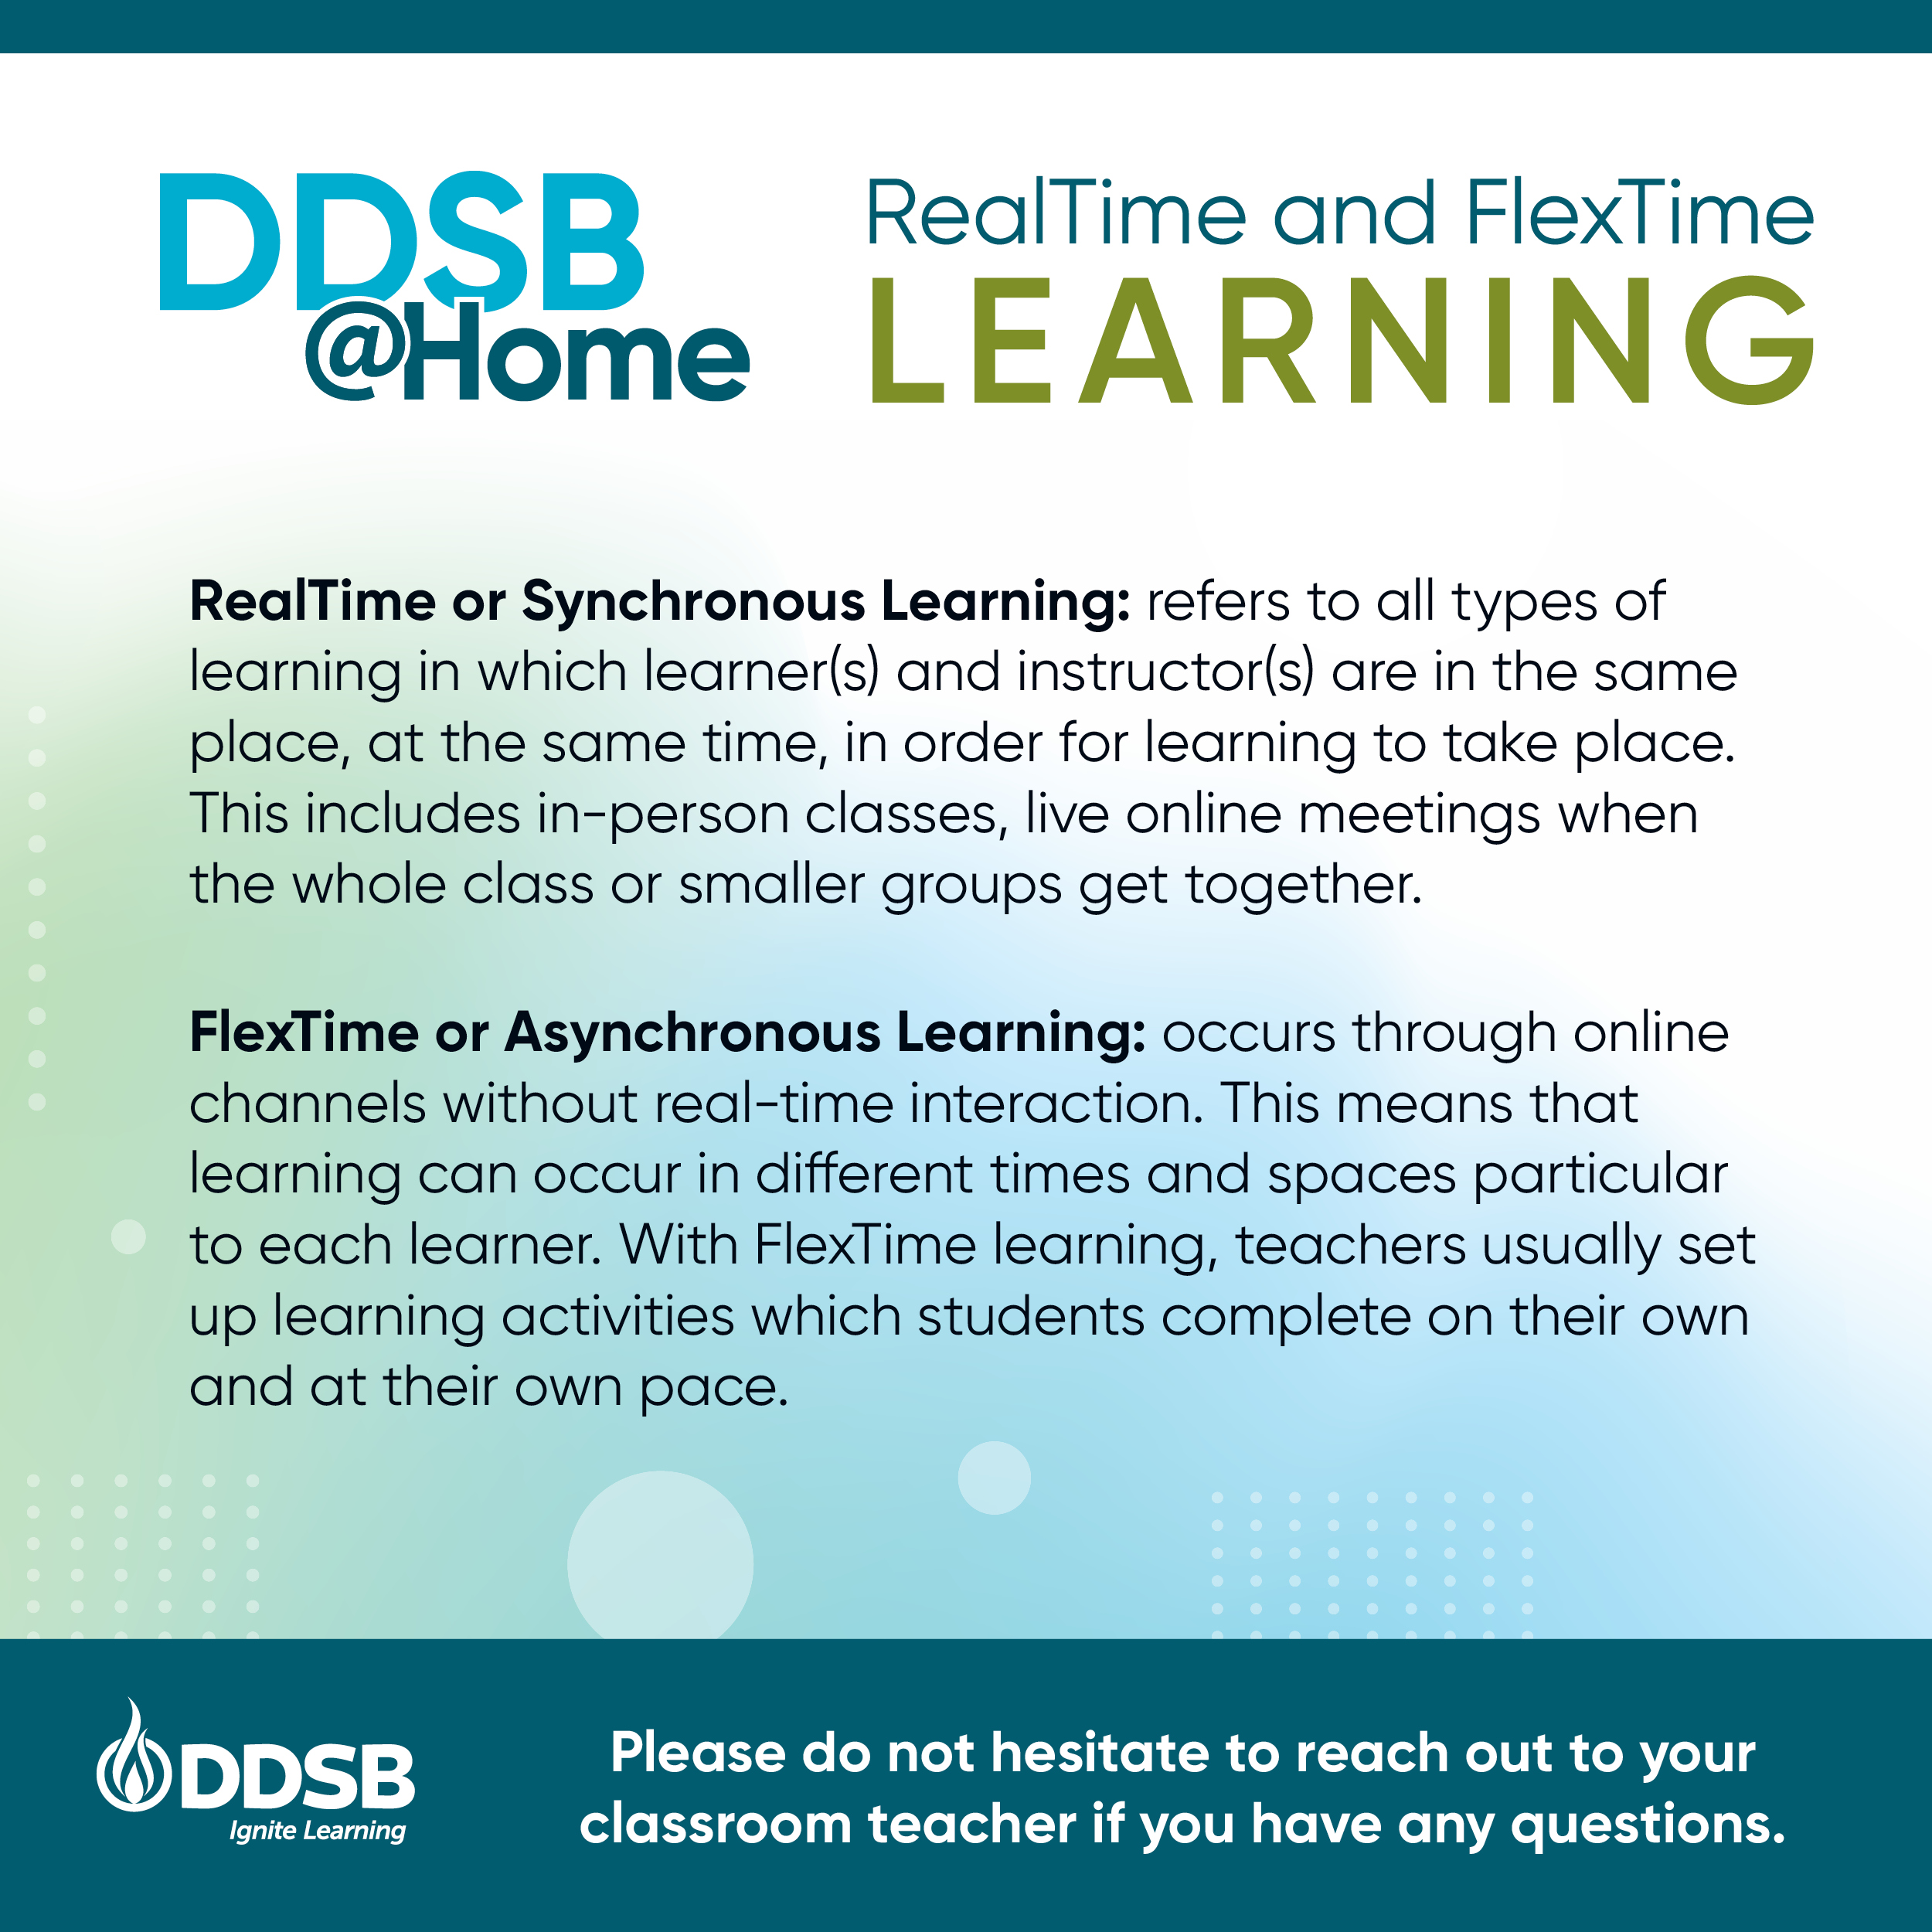 DDSB@Home Elementary - Realtime and FlexTime Learning